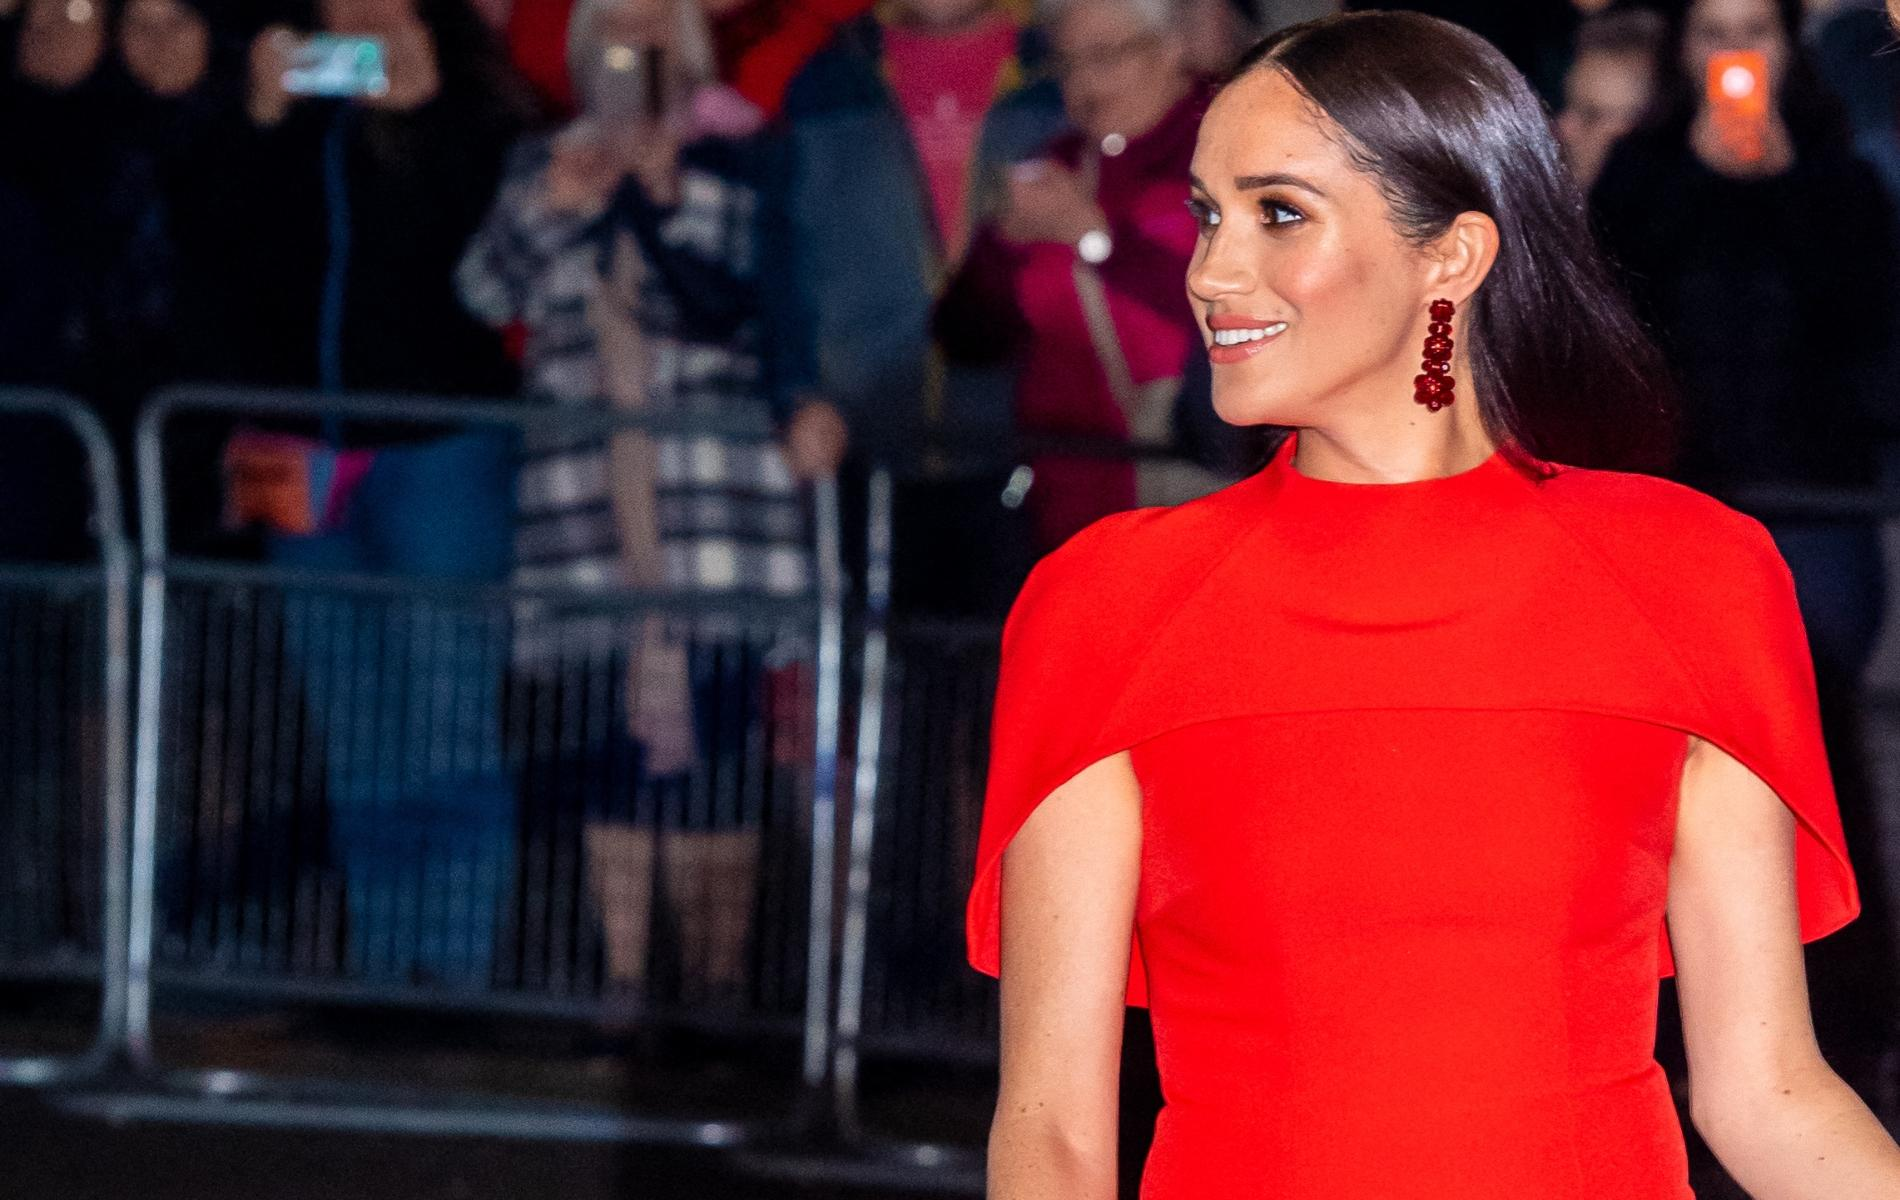 Back to Hollywood : Meghan Markle va jouer les productrices